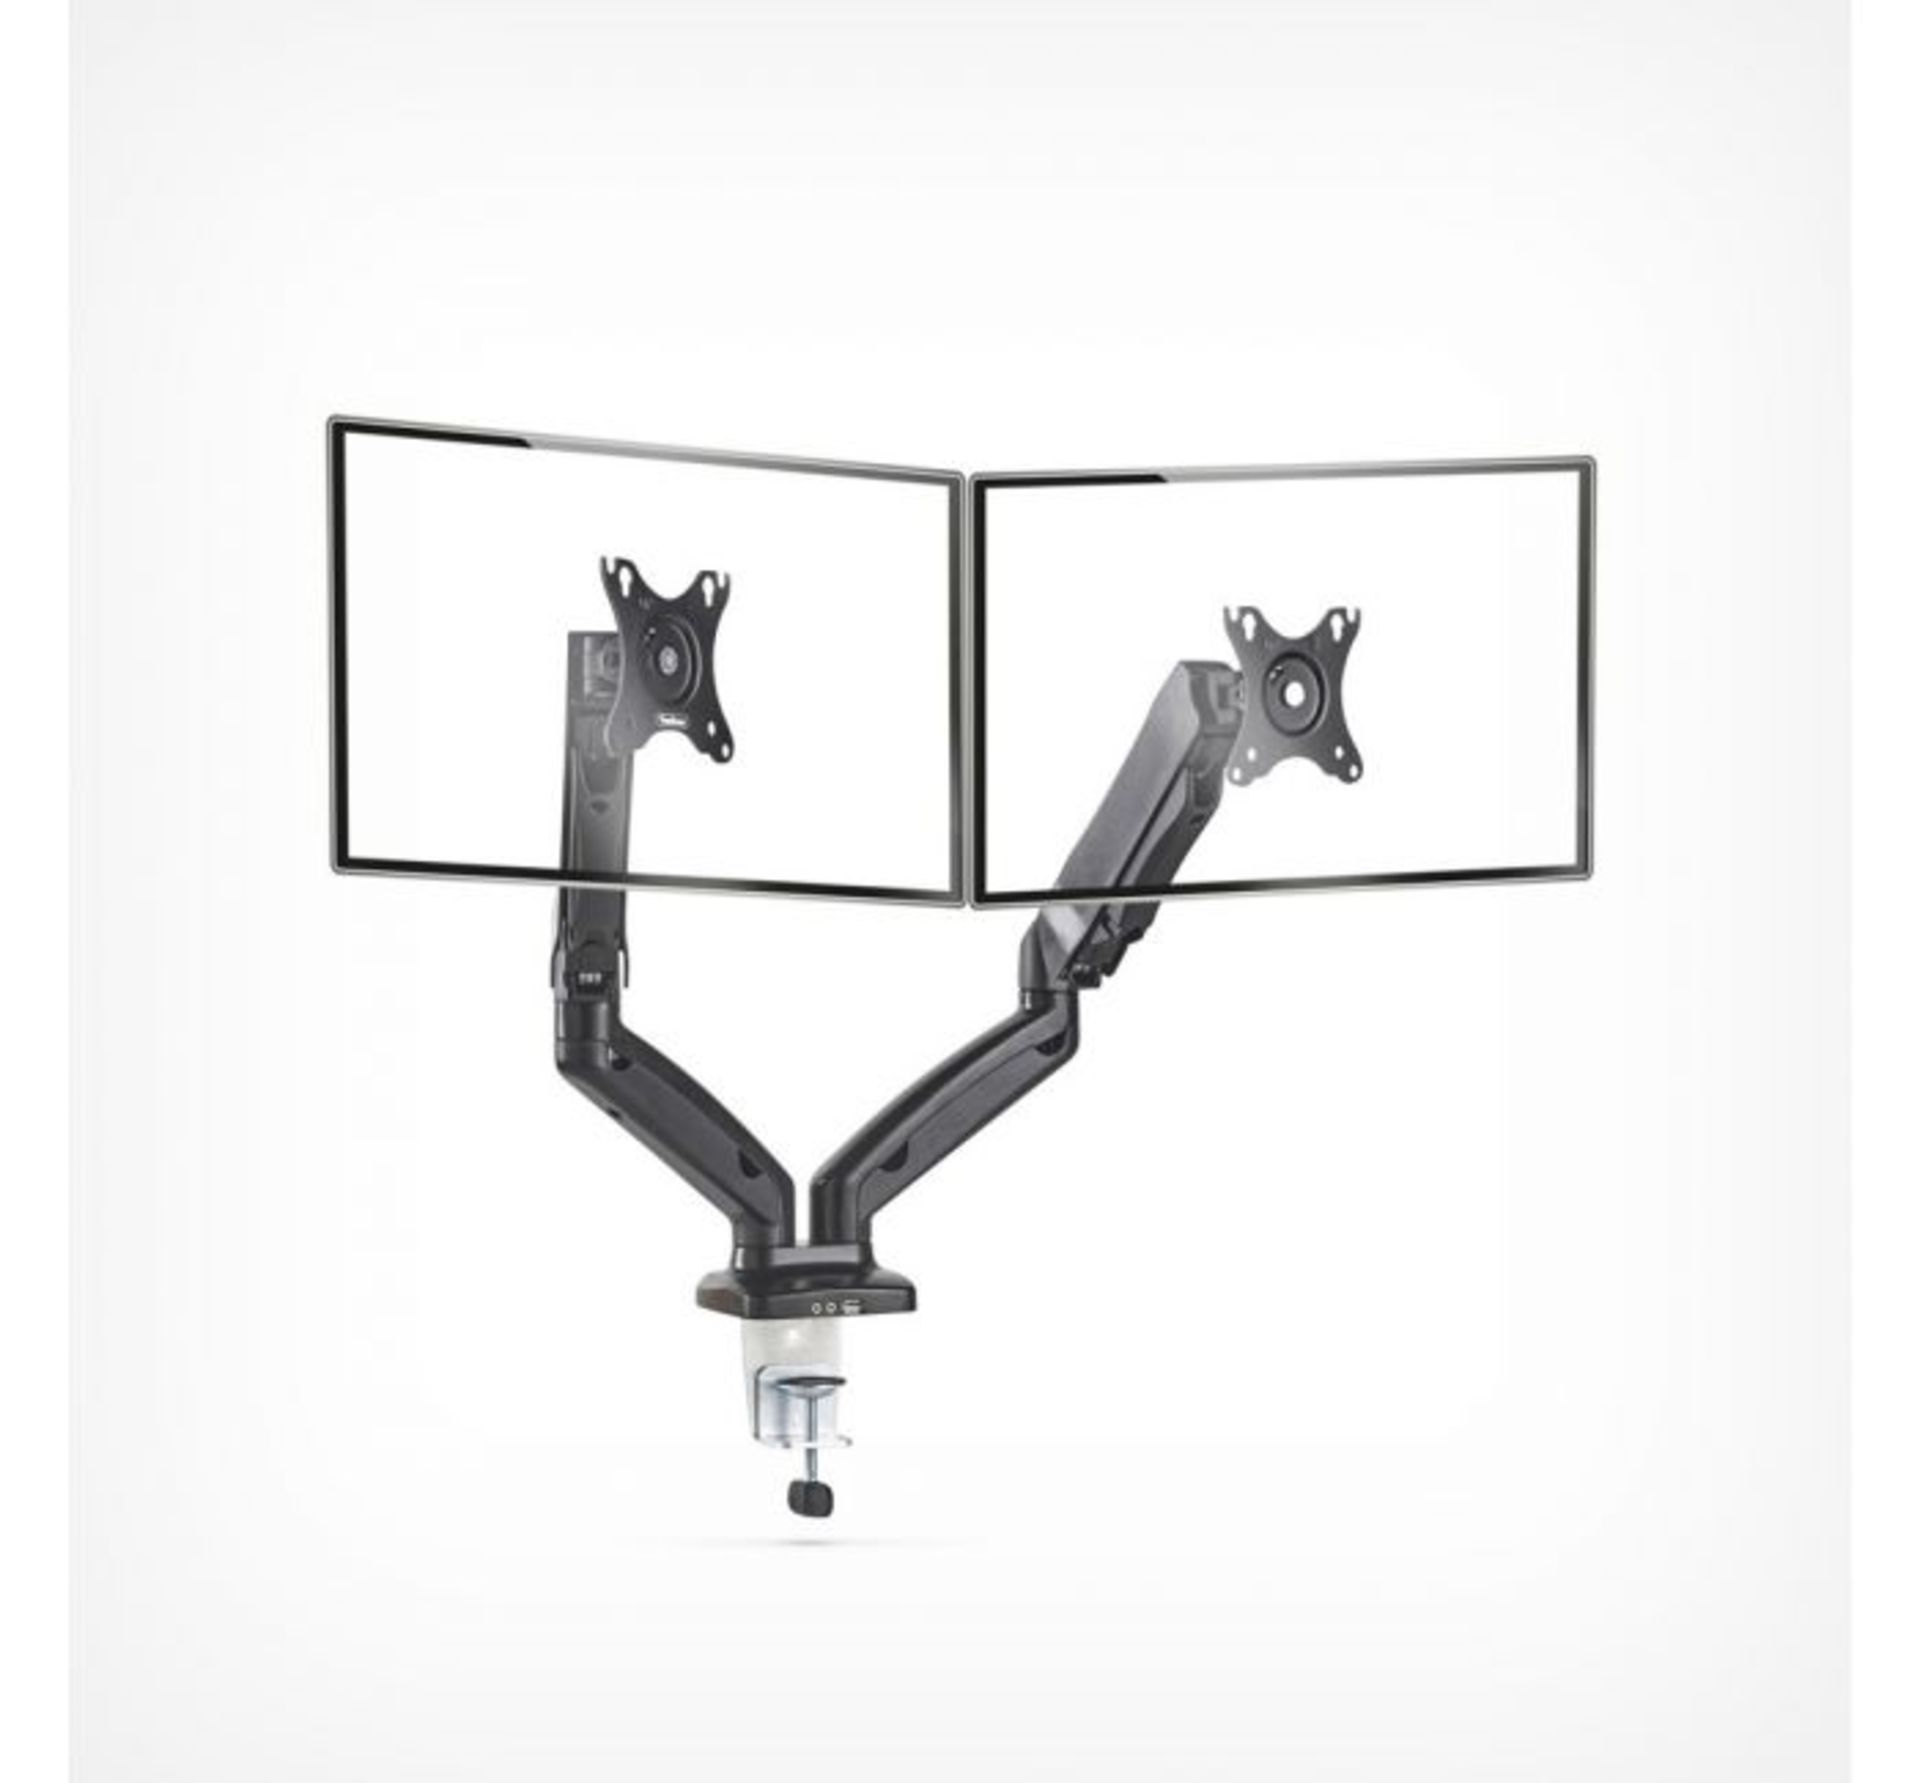 Los 102 - (K26) Dual Arm Gas Mount With Clamp Ultra-flexible double arm monitor mount with built in cabl...